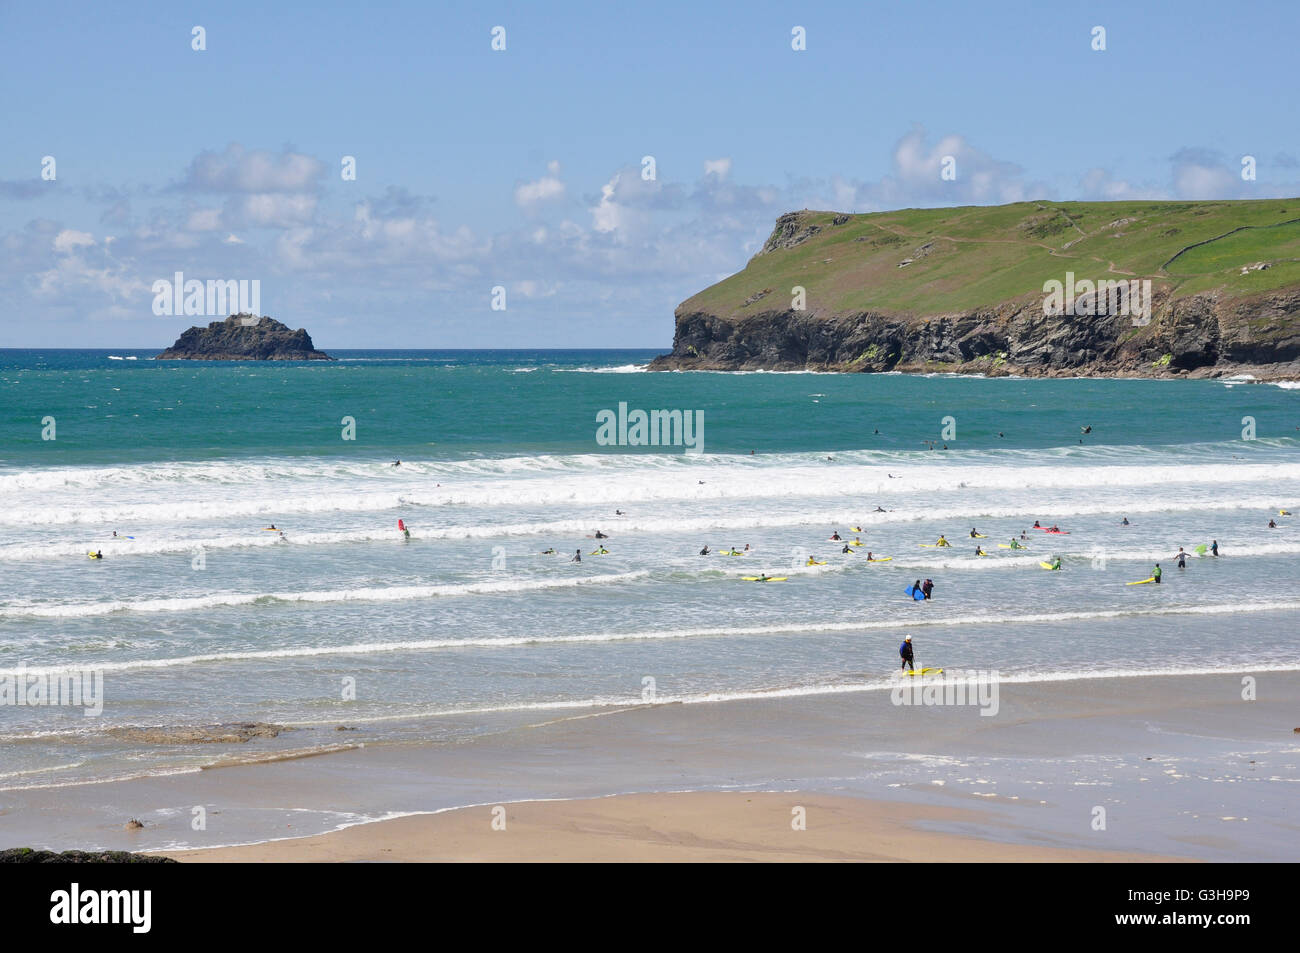 Polzeath beach - incoming tide - white topped rollers - surfers - blue sea and sky - backdrop Pentire Head Cornwall - Stock Image